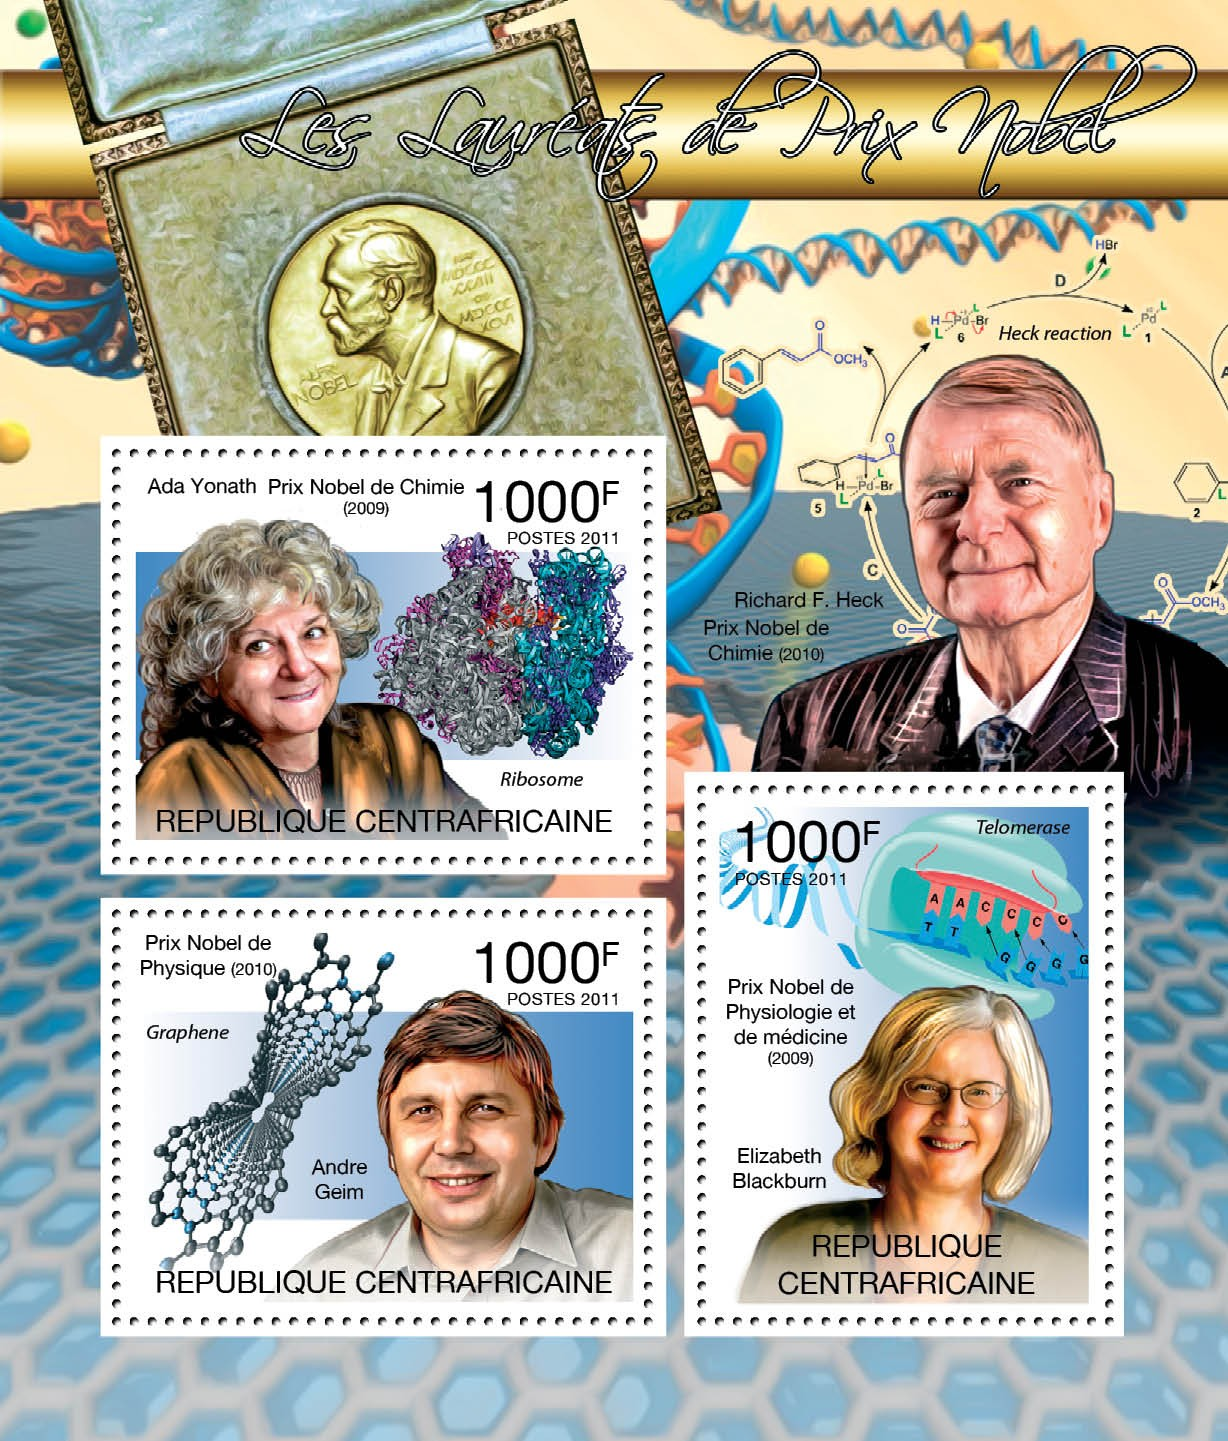 Winers of Nobel Prize, (A.Yonath, A.Geim, E.Blackburn). - Issue of Central African republic postage stamps